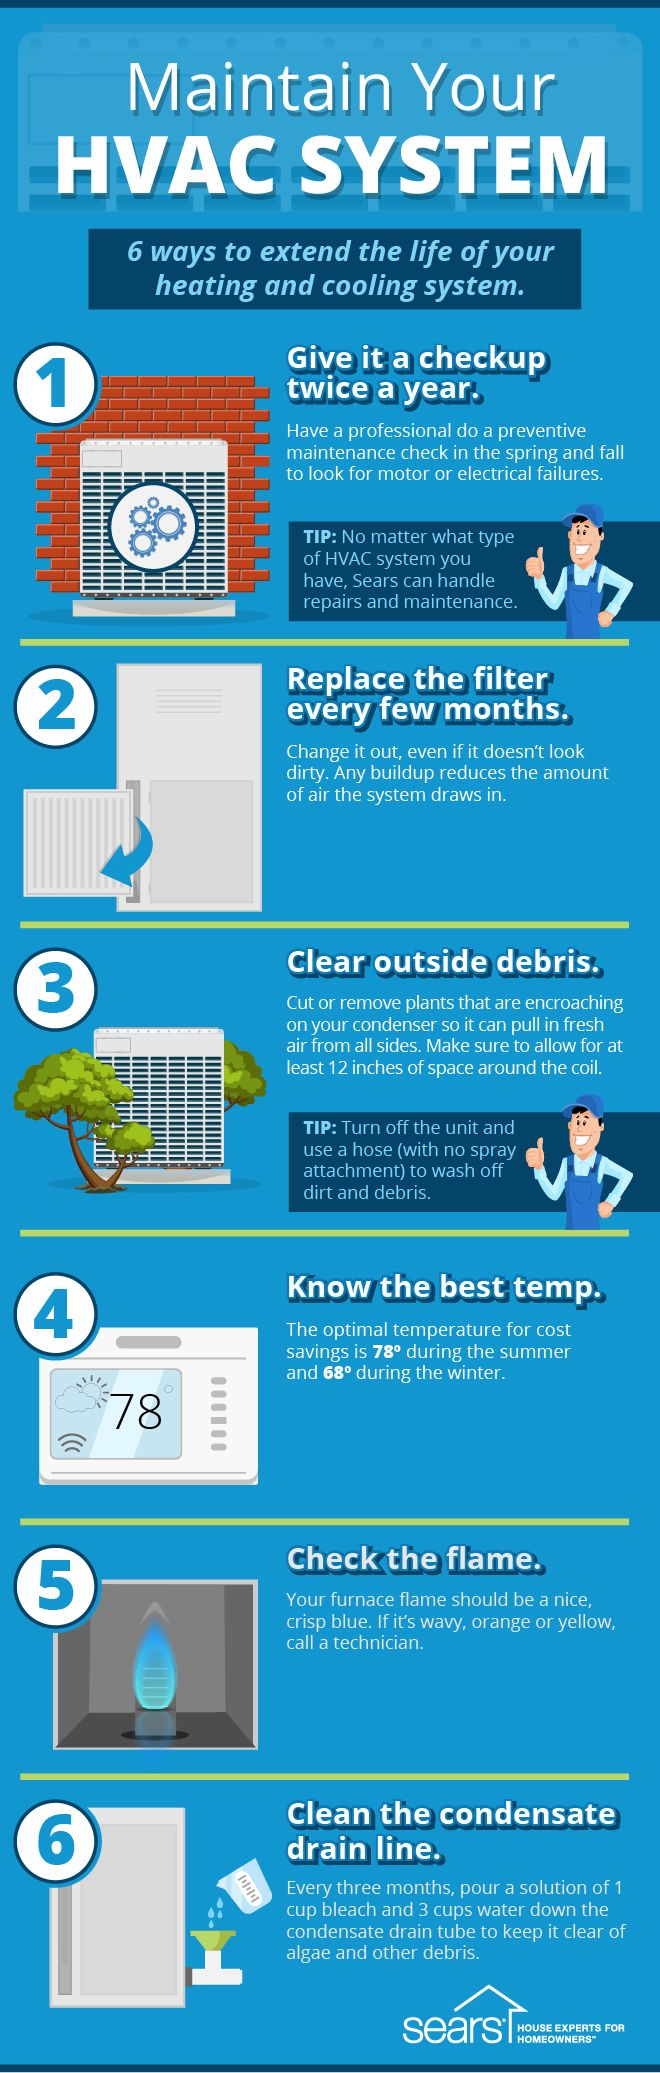 Best Of Fall Maintenance Tips for Your Home